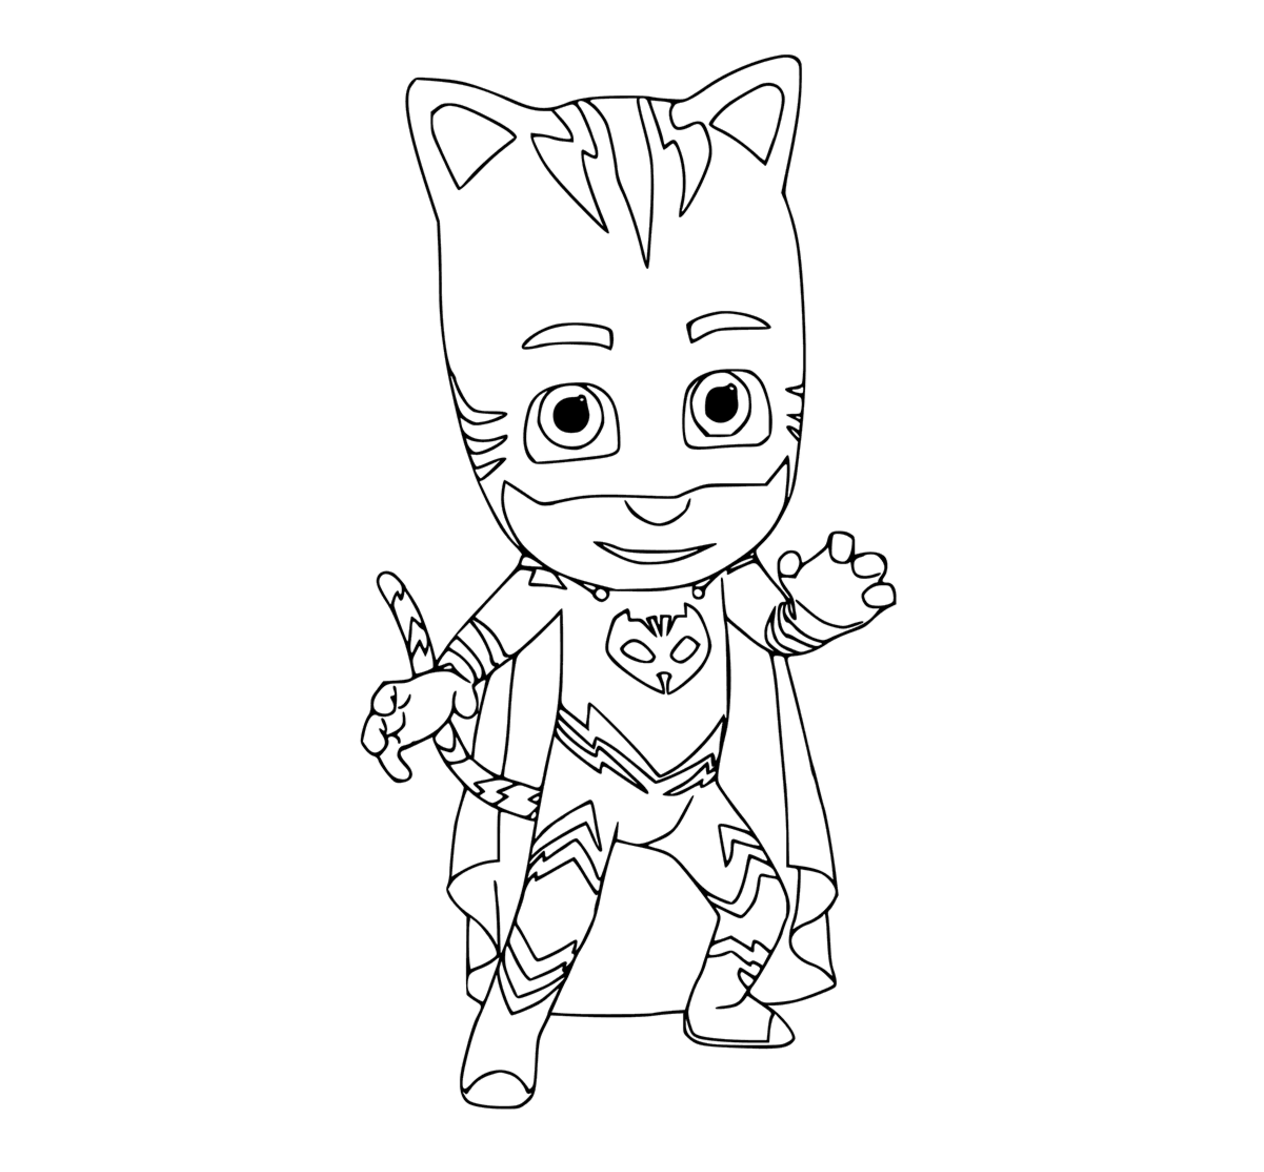 Cat boys Colouring Page